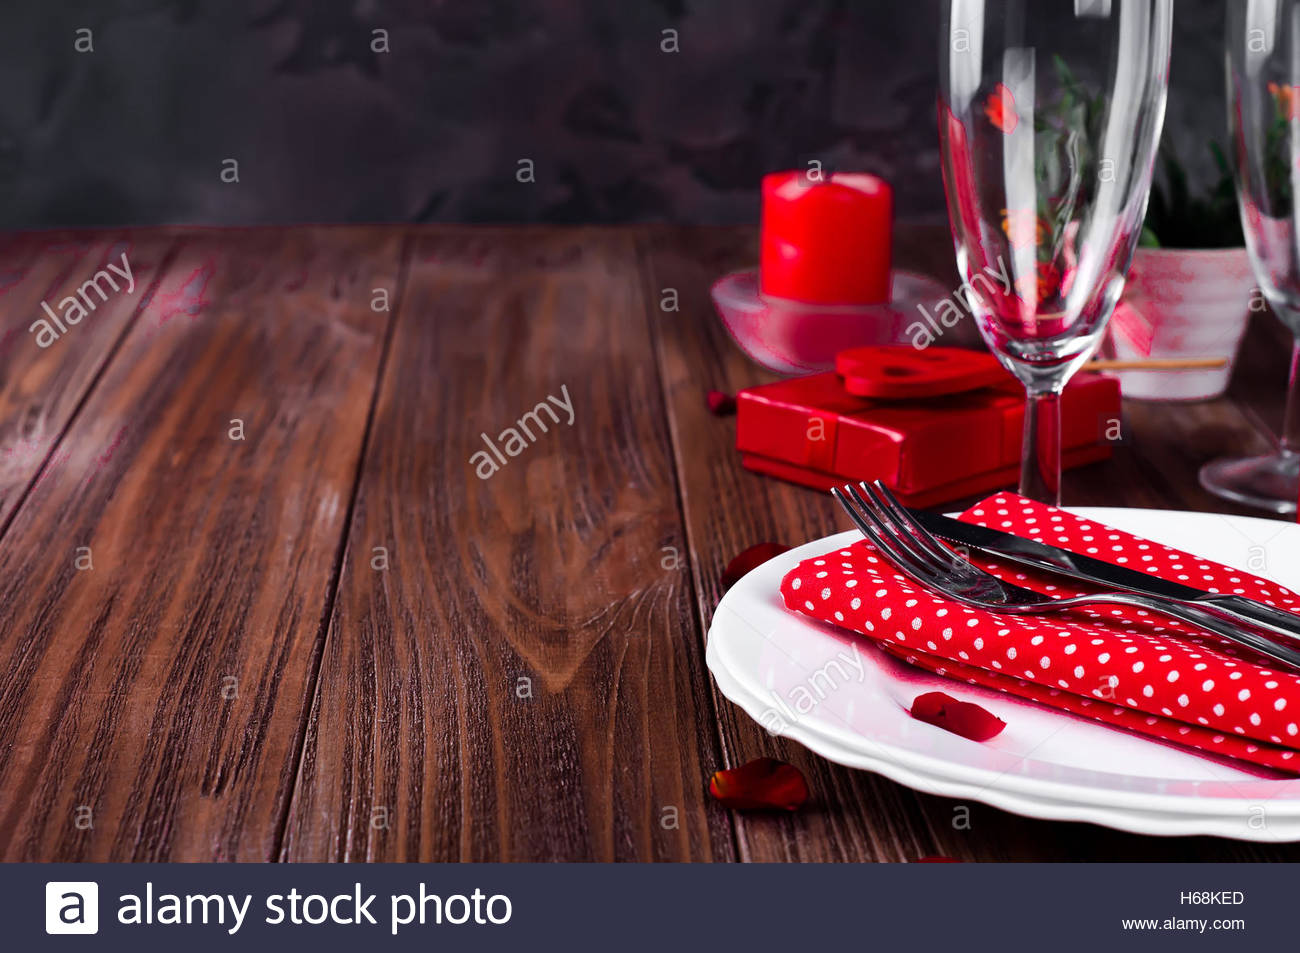 Romantic Valentine Candle Light Dinner Table Setting with red roses gift and burning candles against a brown background. & Romantic Valentine Candle Light Dinner Table Setting with red roses ...